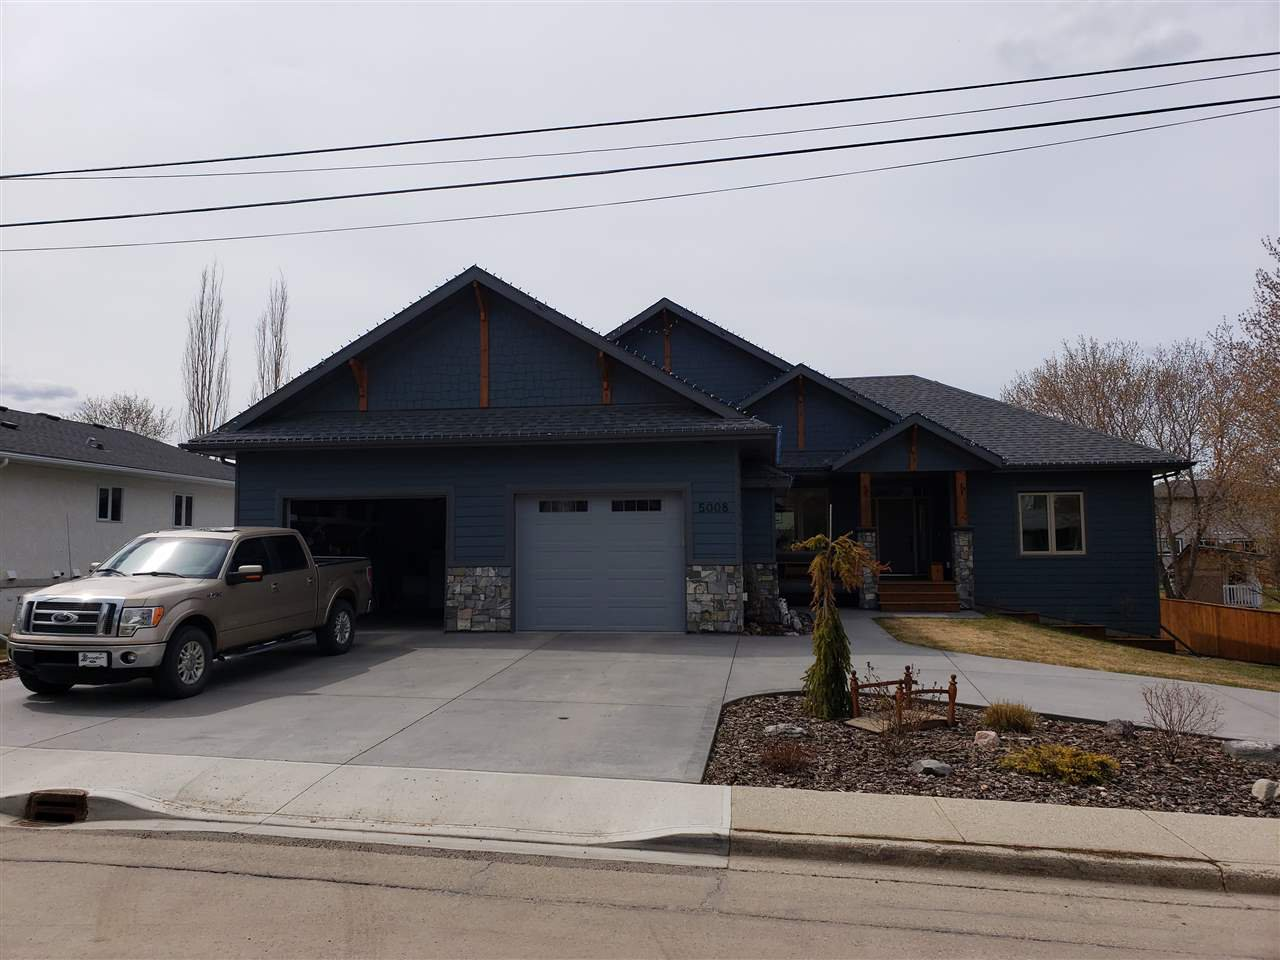 Main Photo: 5008 52 Street: Stony Plain House for sale : MLS®# E4169918